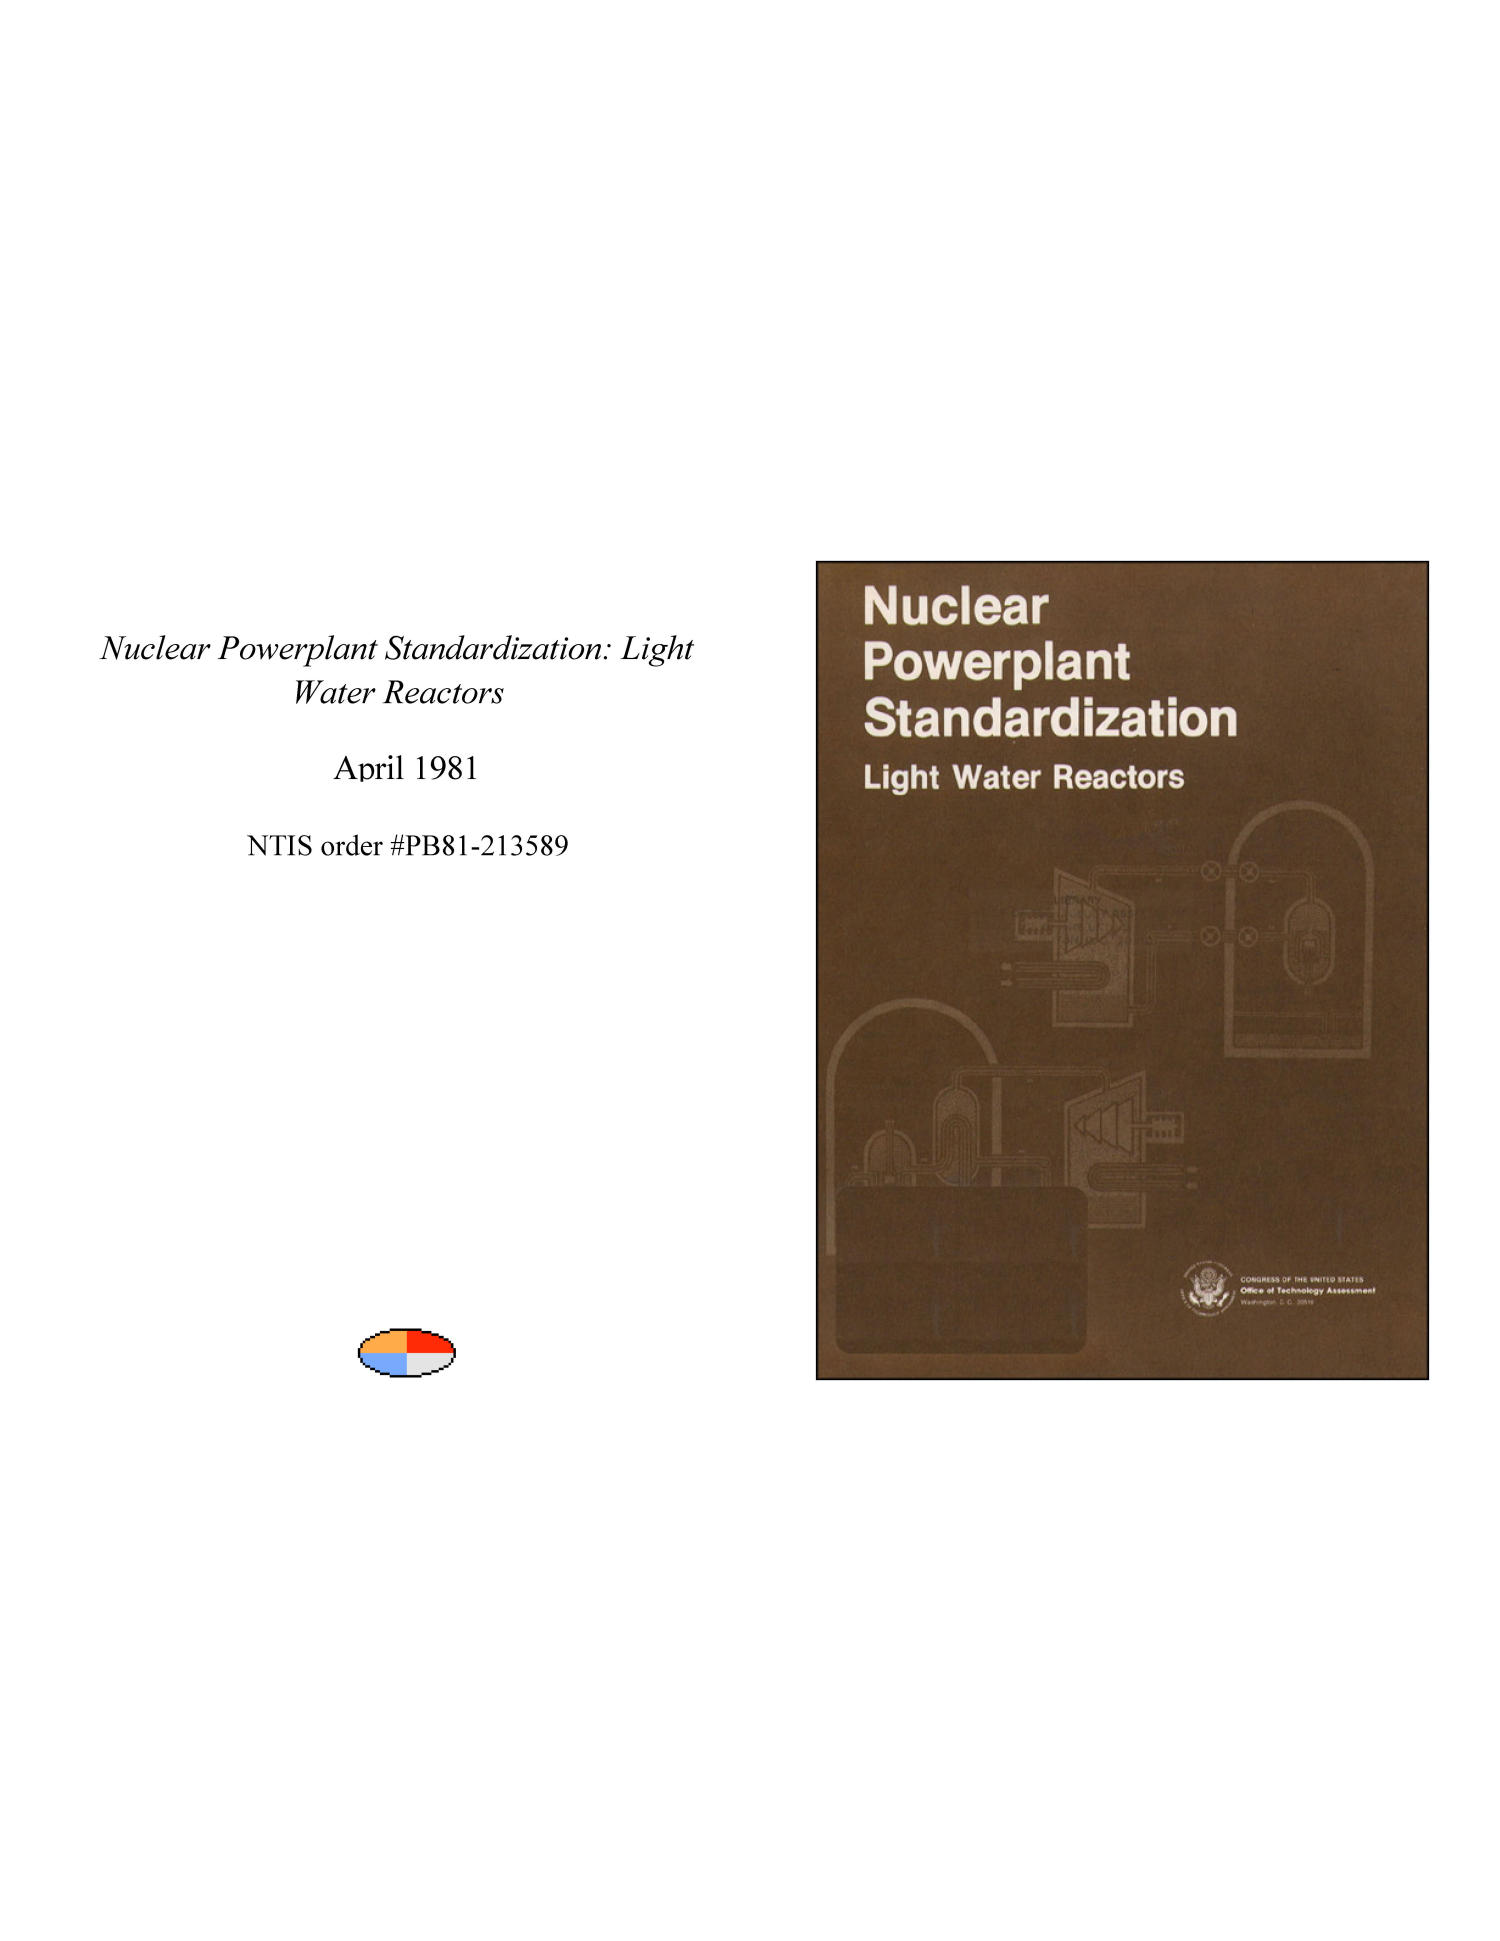 Nuclear Powerplant Standardization Light Water Reactors Digital Power Plant With Diagram Library